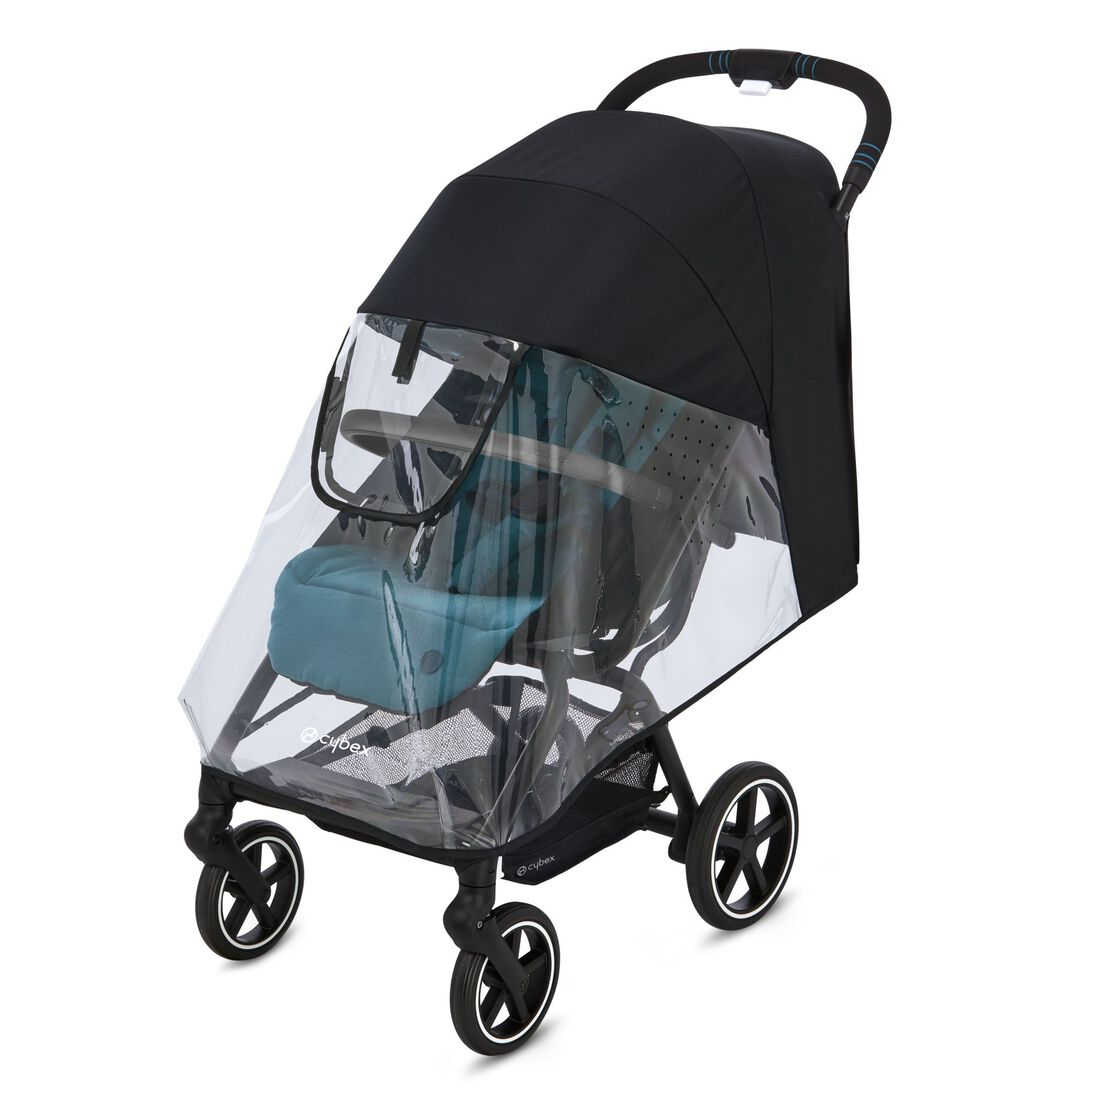 CYBEX Rain Cover Eezy S Line - Transparent in Transparent large image number 2